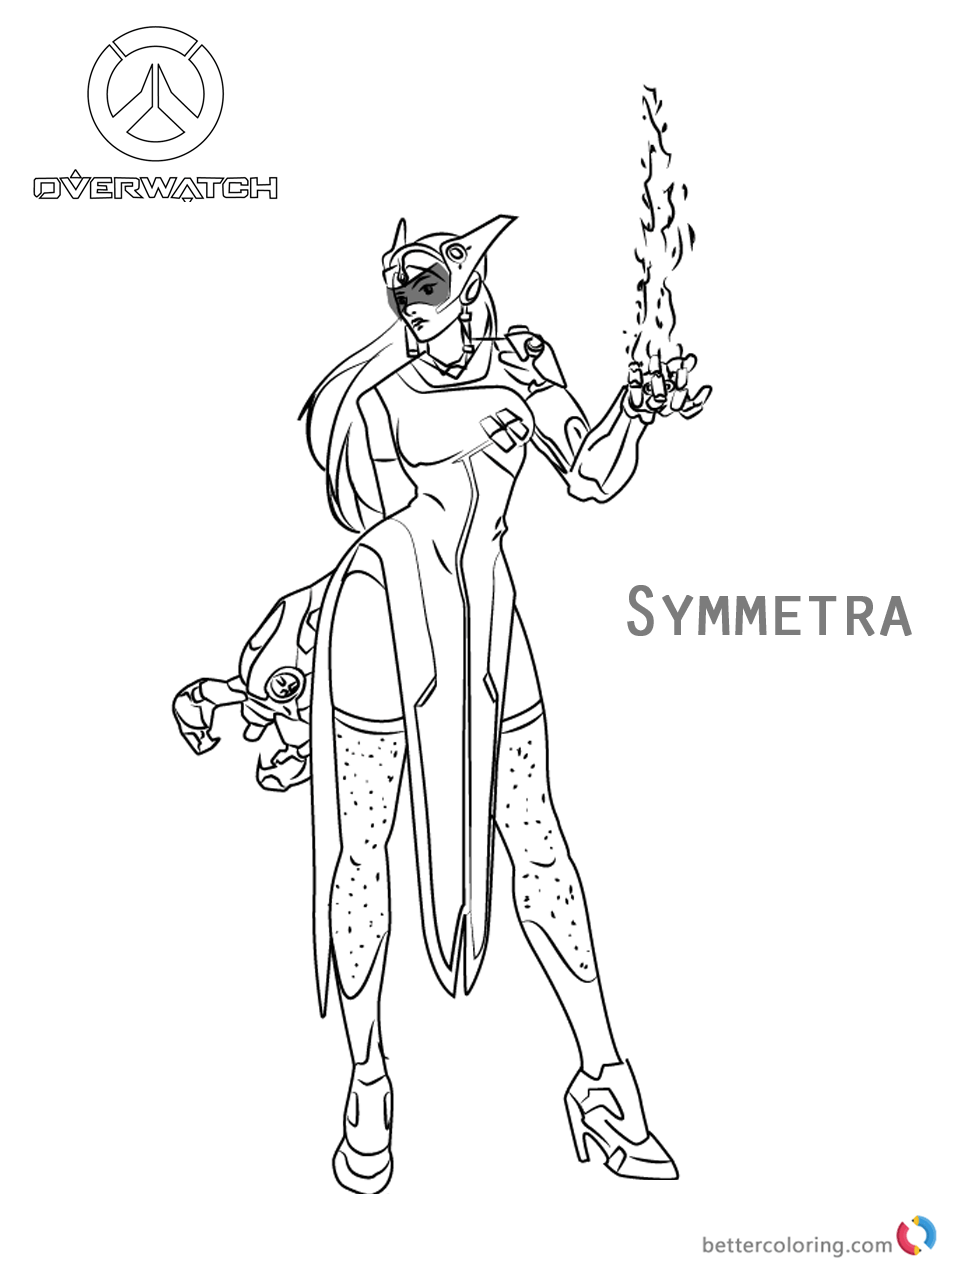 Symmetra From Overwatch Coloring Pages Free Printable